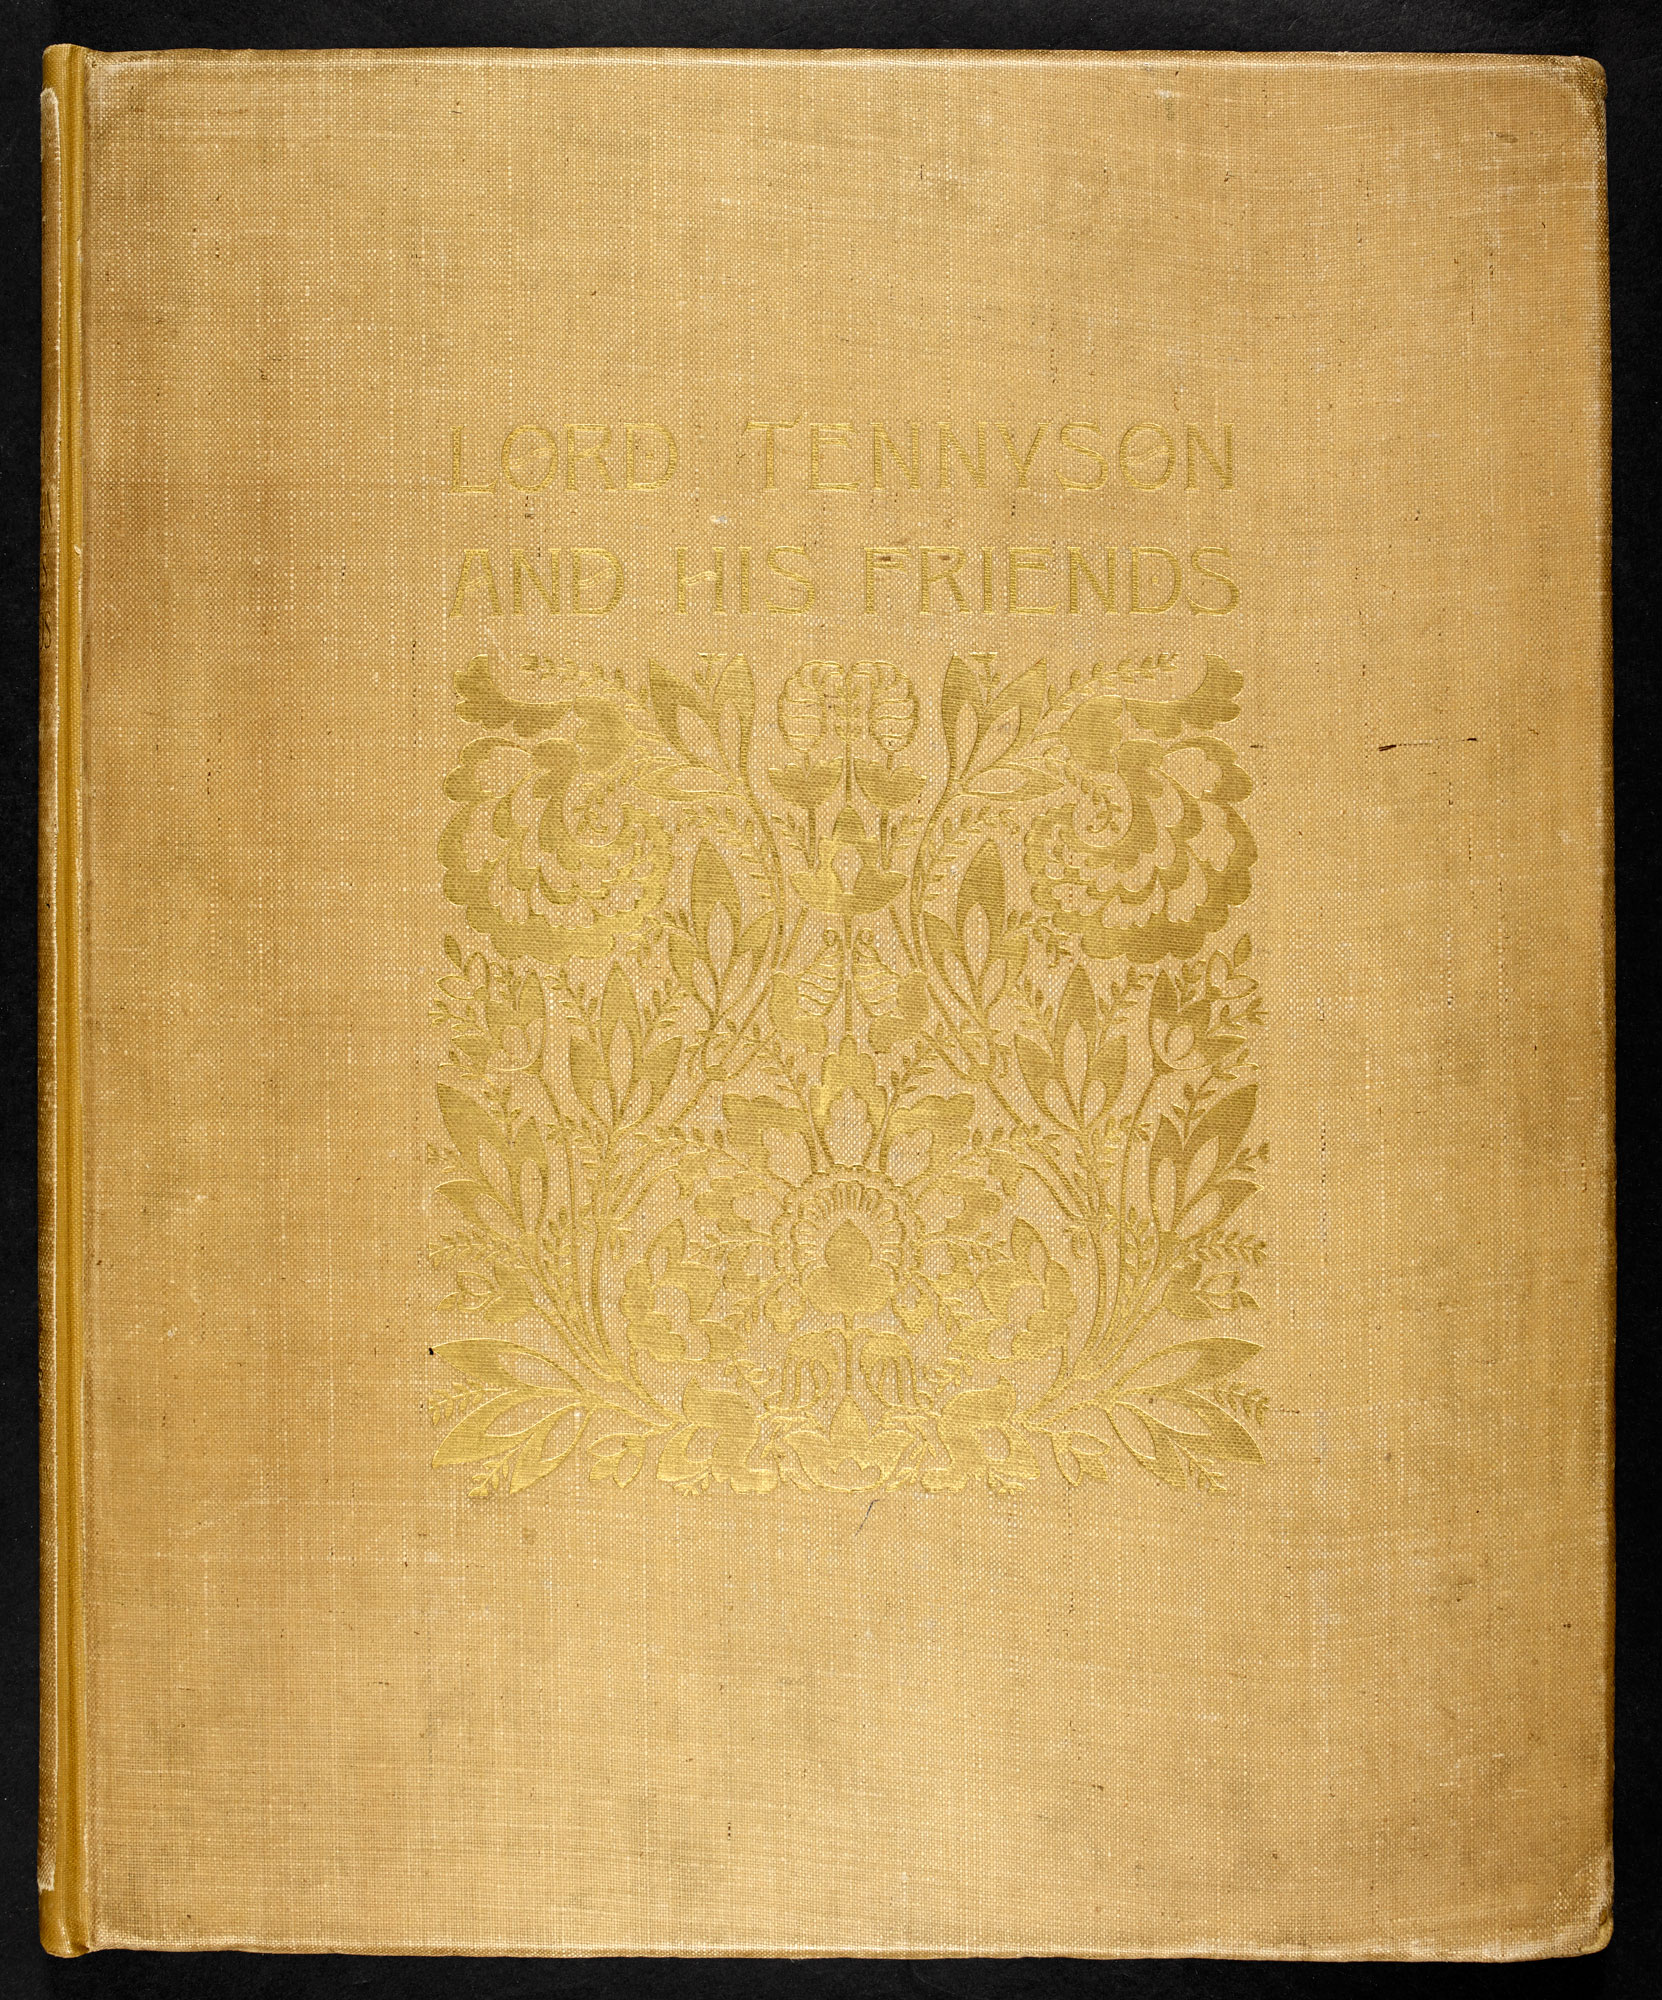 Alfred, Lord Tennyson and his friends: a series of 25 portraits, Julia Margaret Cameron [page: front cover]